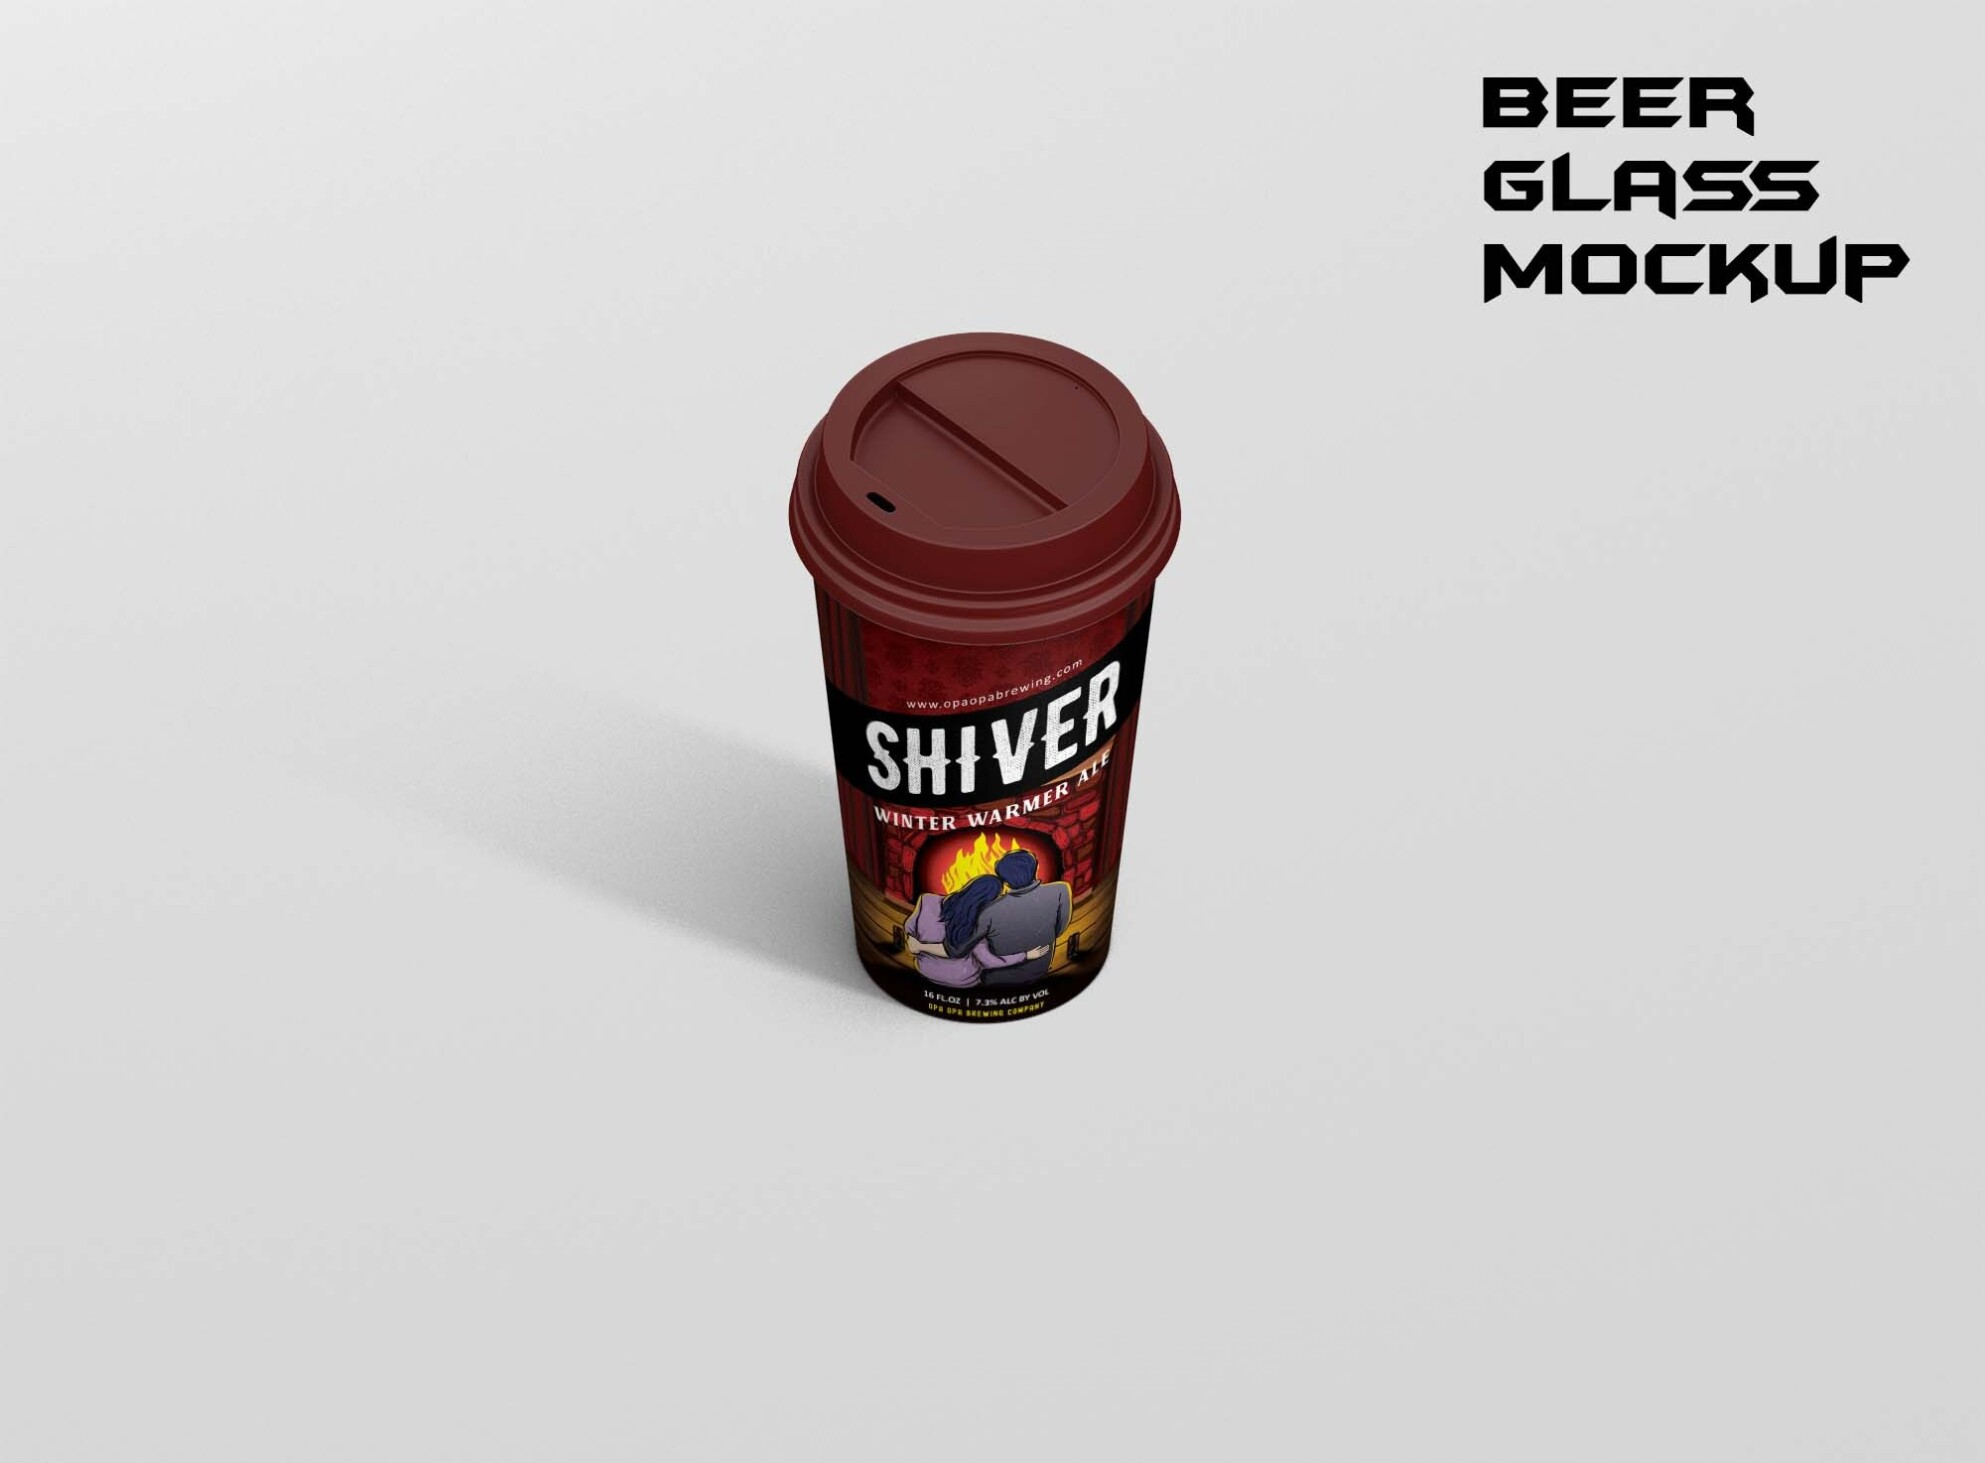 Beer Glass Mockup